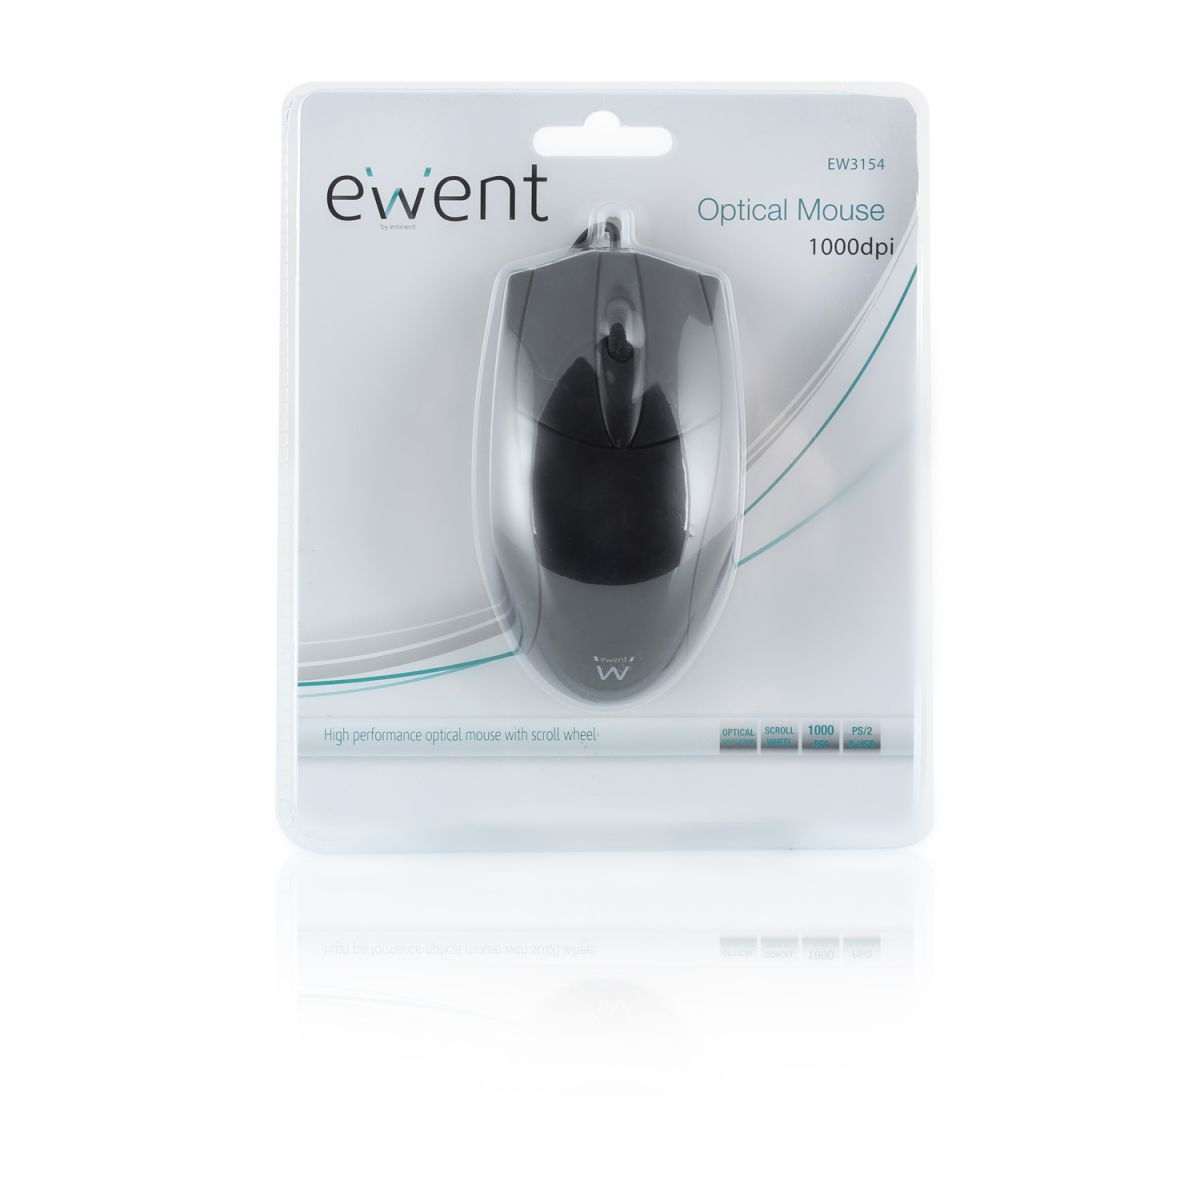 ewent ew3154 optical mouse usb ps2